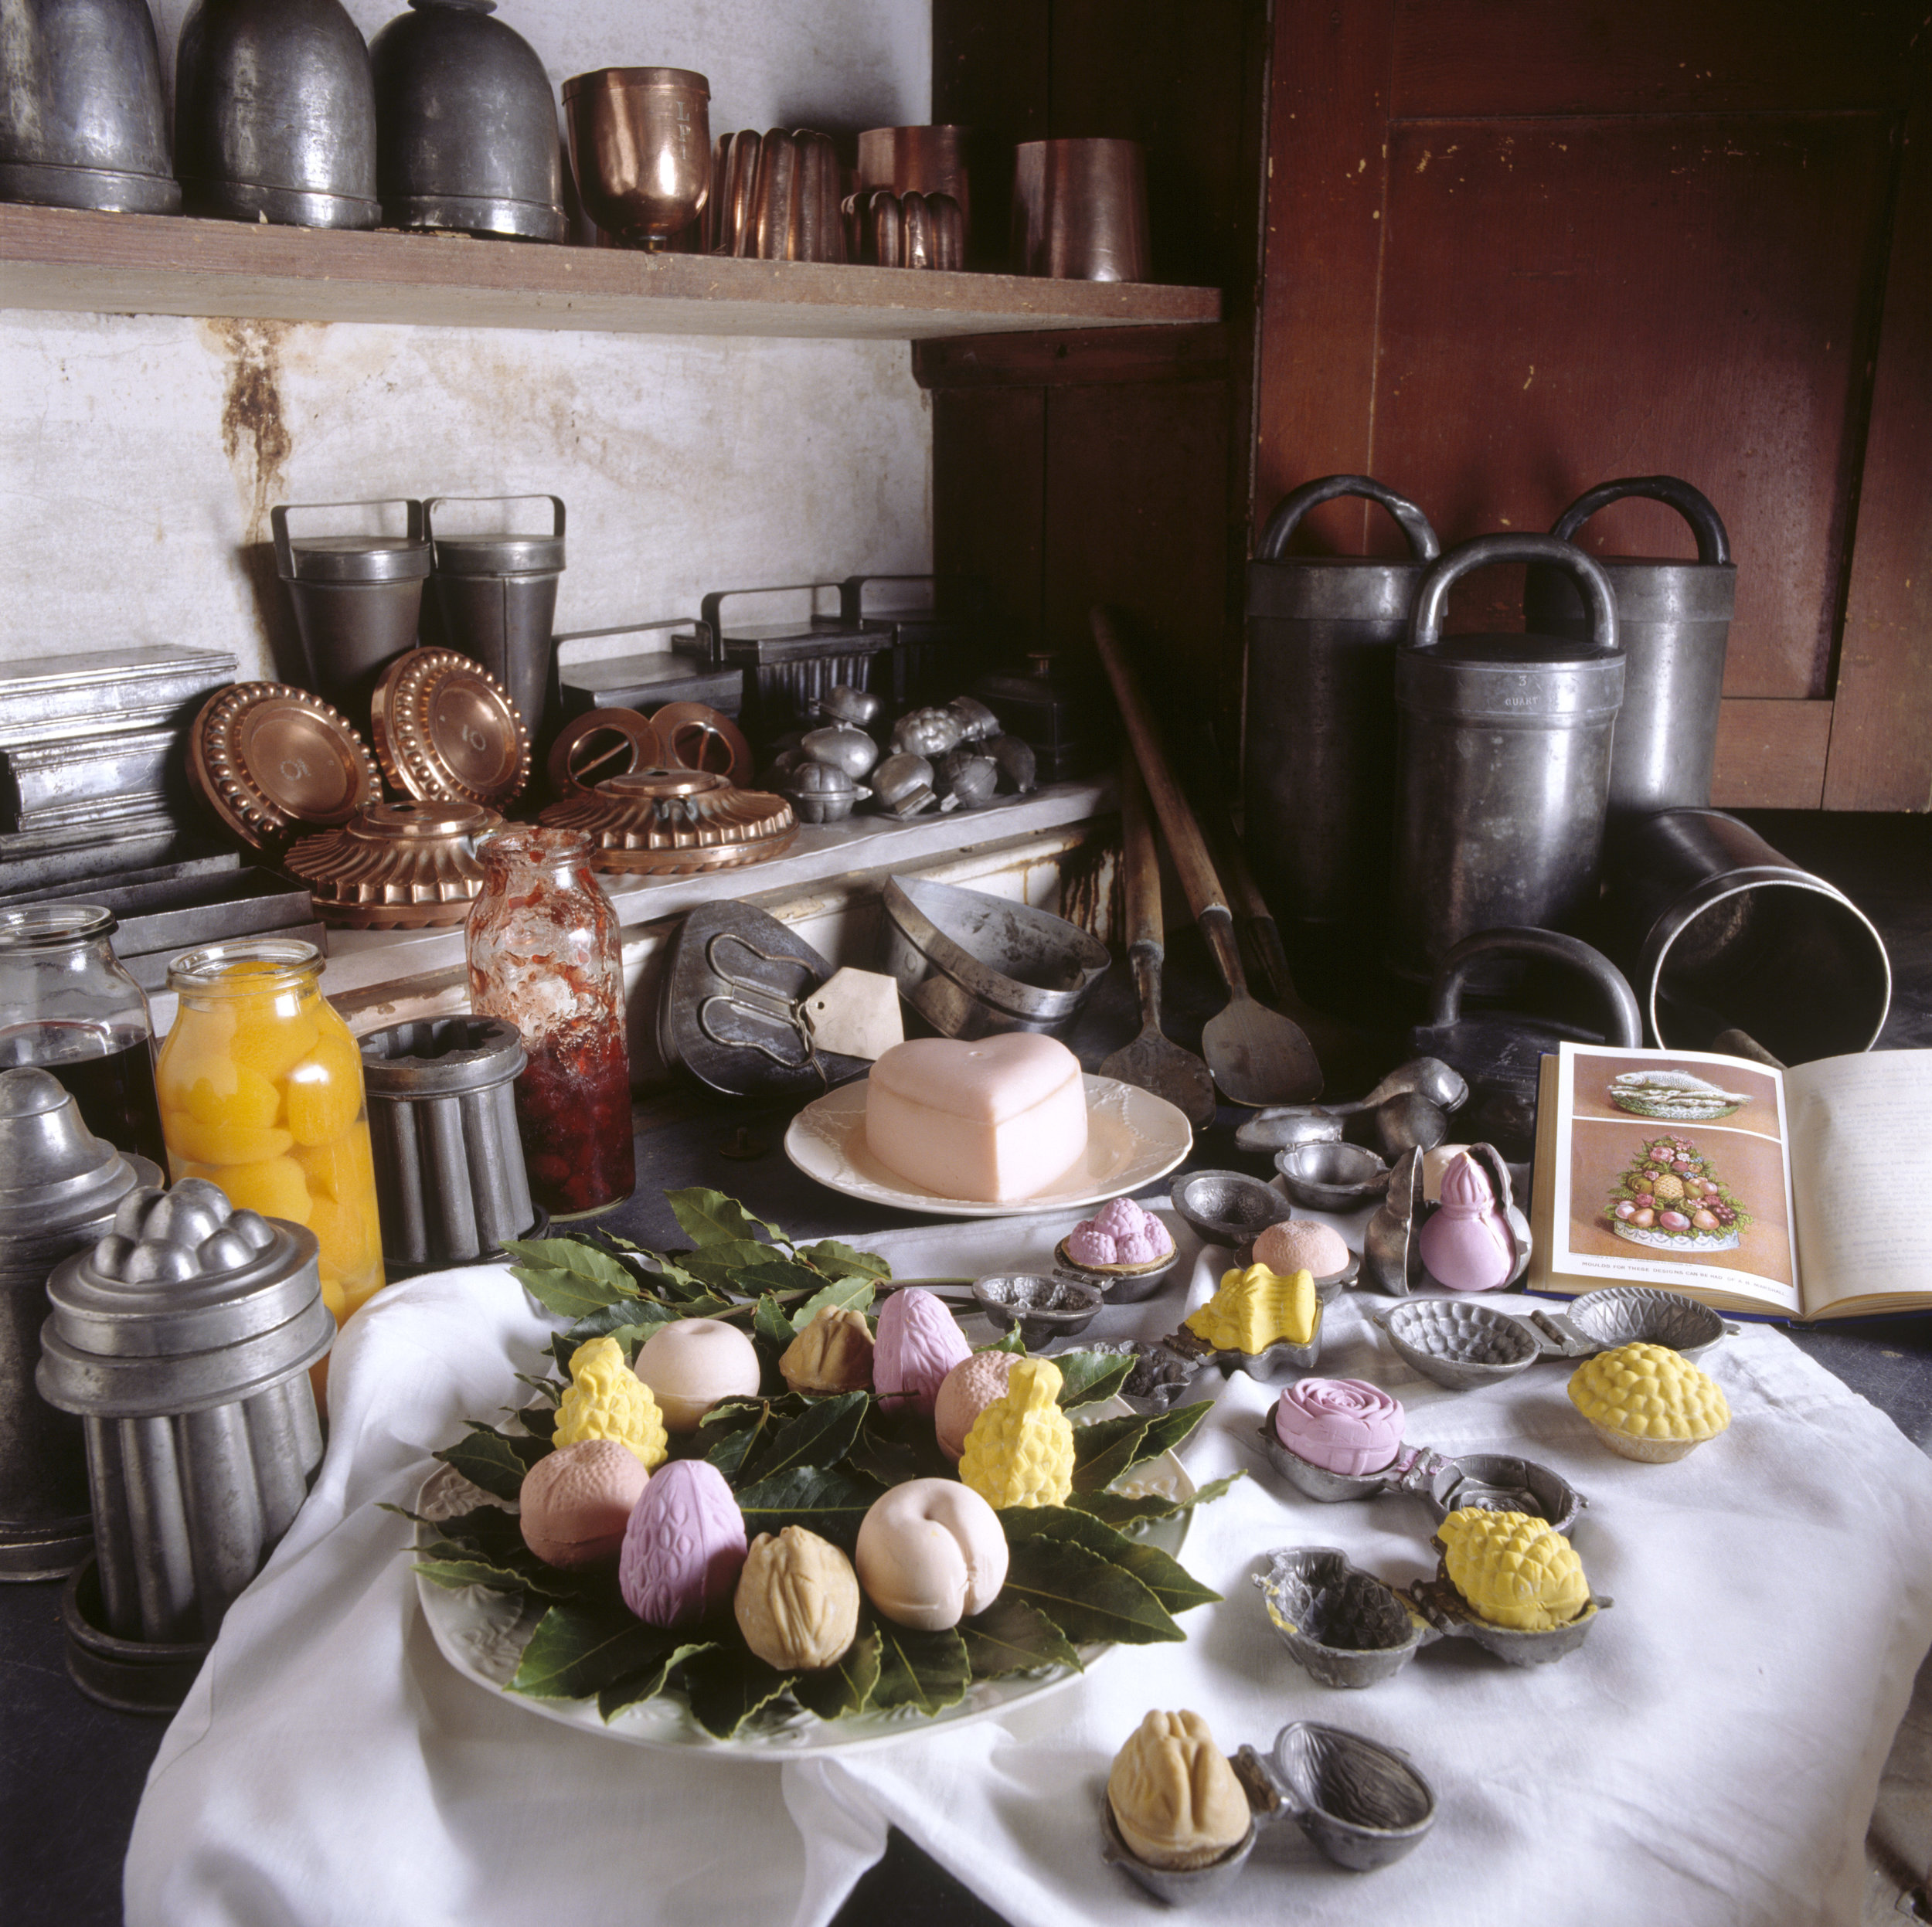 Victorian ice cream making utensils in the Larder at Petworth House, West Sussex ©National Trust Images Andreas von Einsiedel